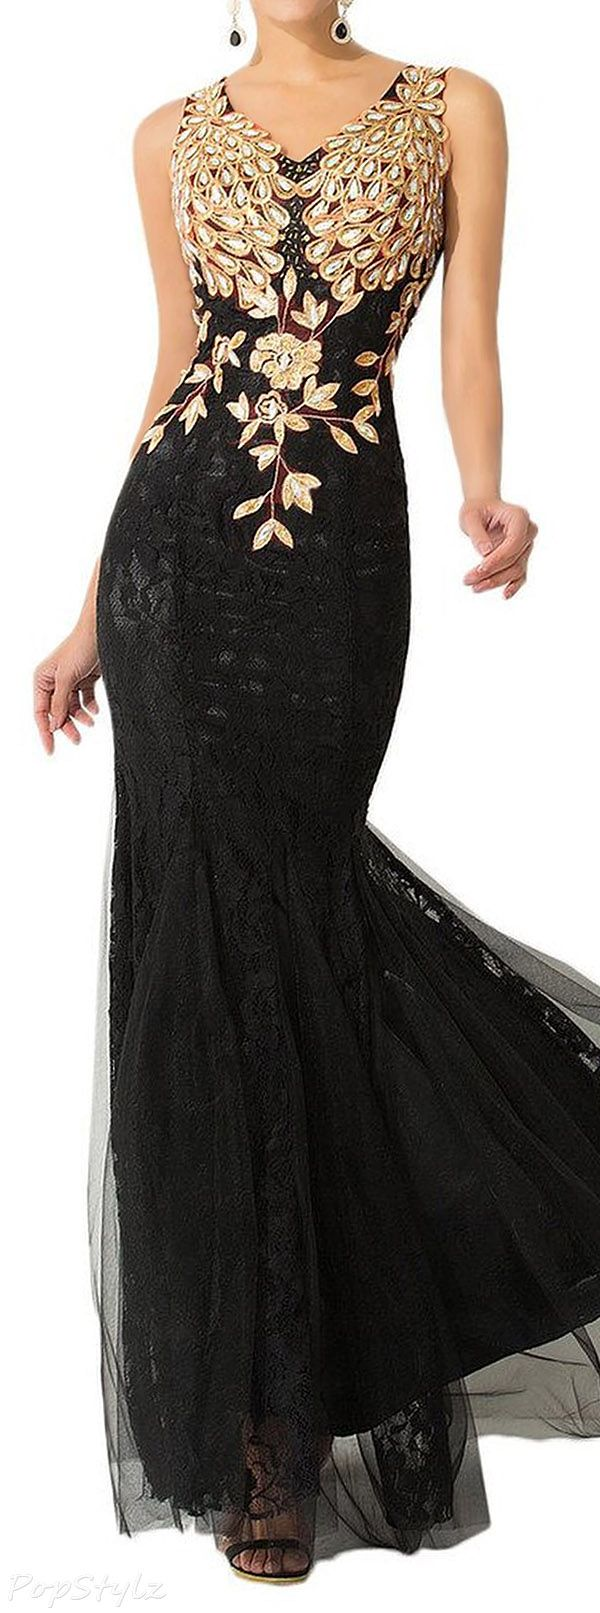 Sunvary mermaid lace long formal gown black u gold